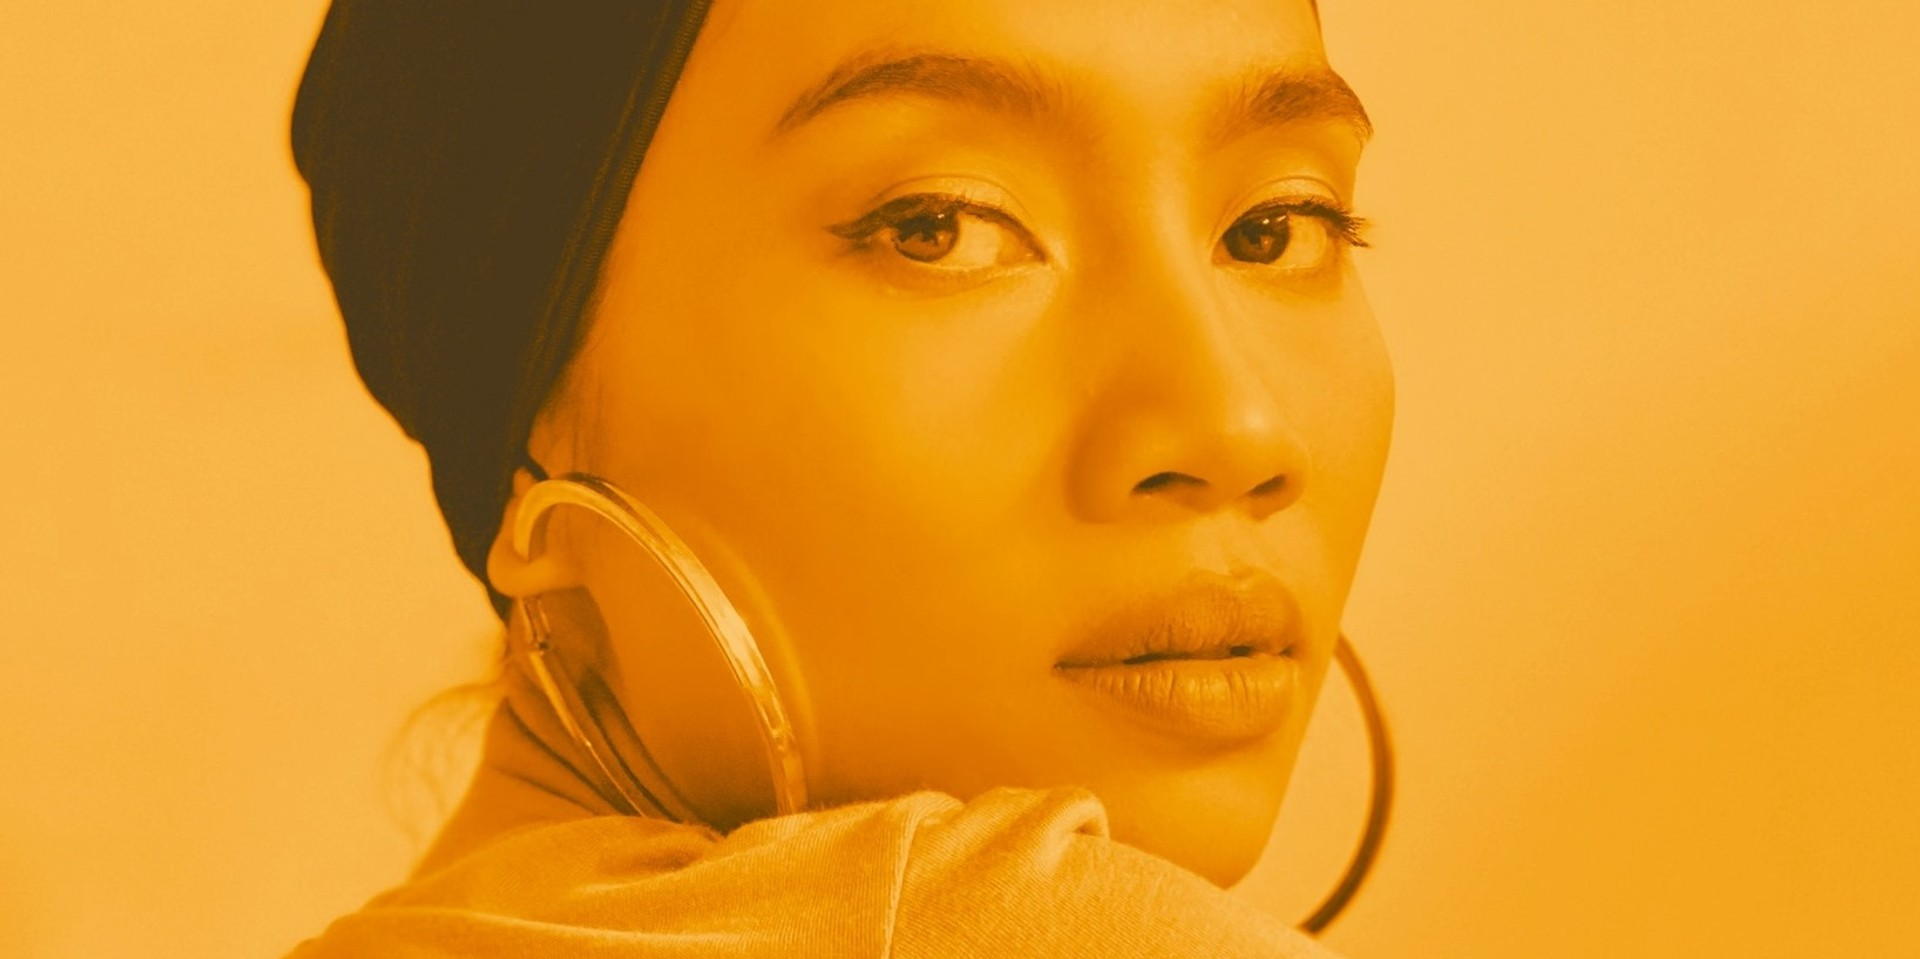 Yuna will be holding her online concert from Aquaria KLCC this December